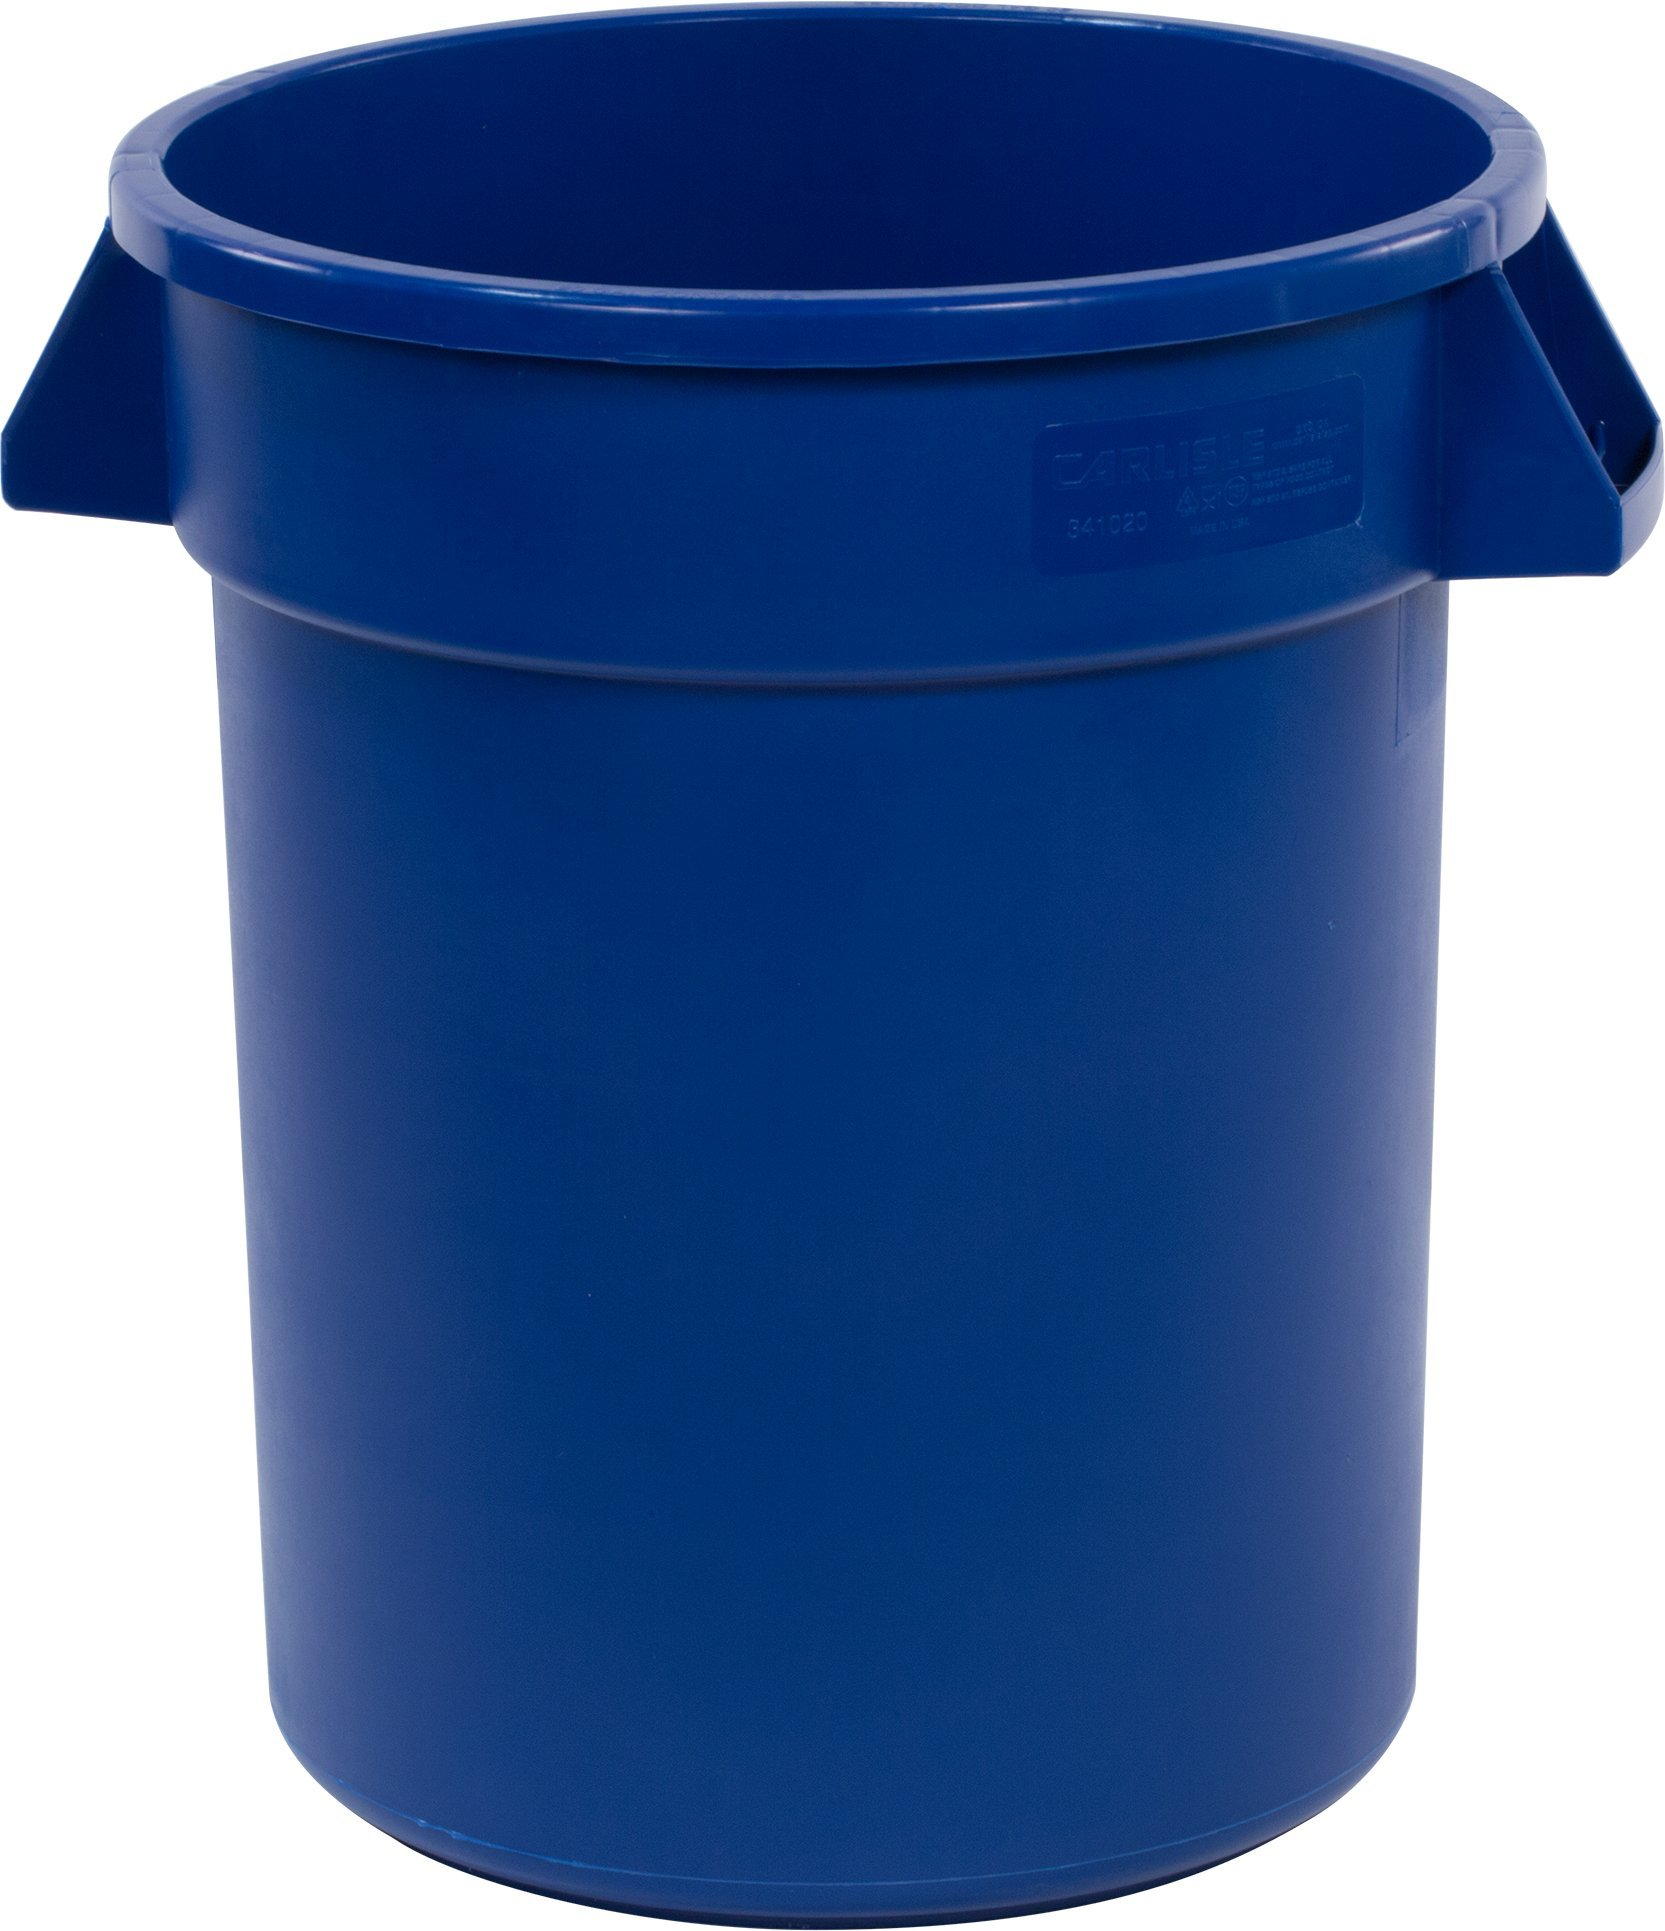 Carlisle 34102014 Bronco Round Waste Container Only, 20 Gallon, Blue (Pack of 6)